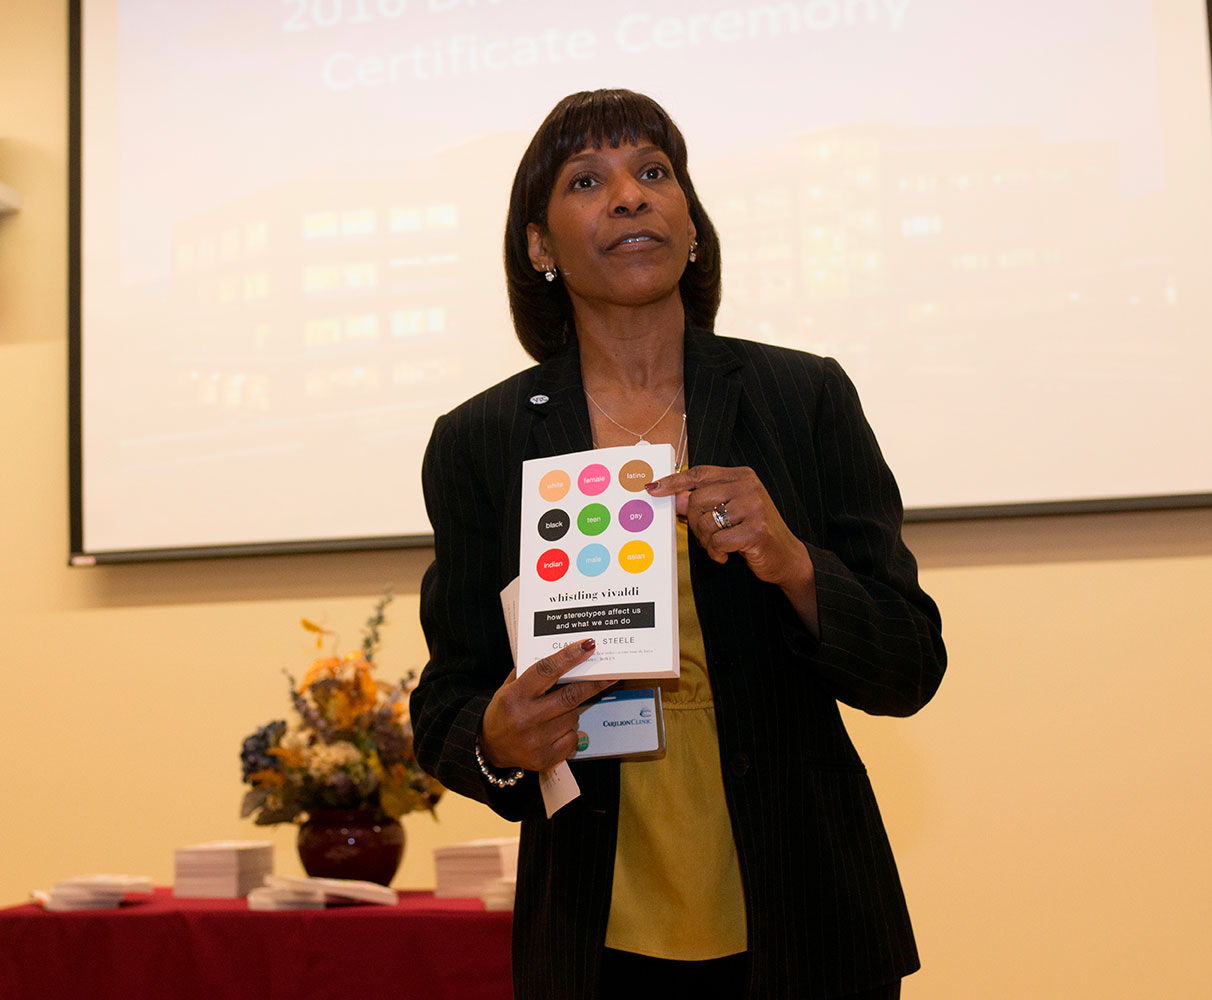 Virginia Tech Carilion School of Medicine's chief diversity officer, Karen Eley Sanders speaks at a Diversity Associate Ceremony.